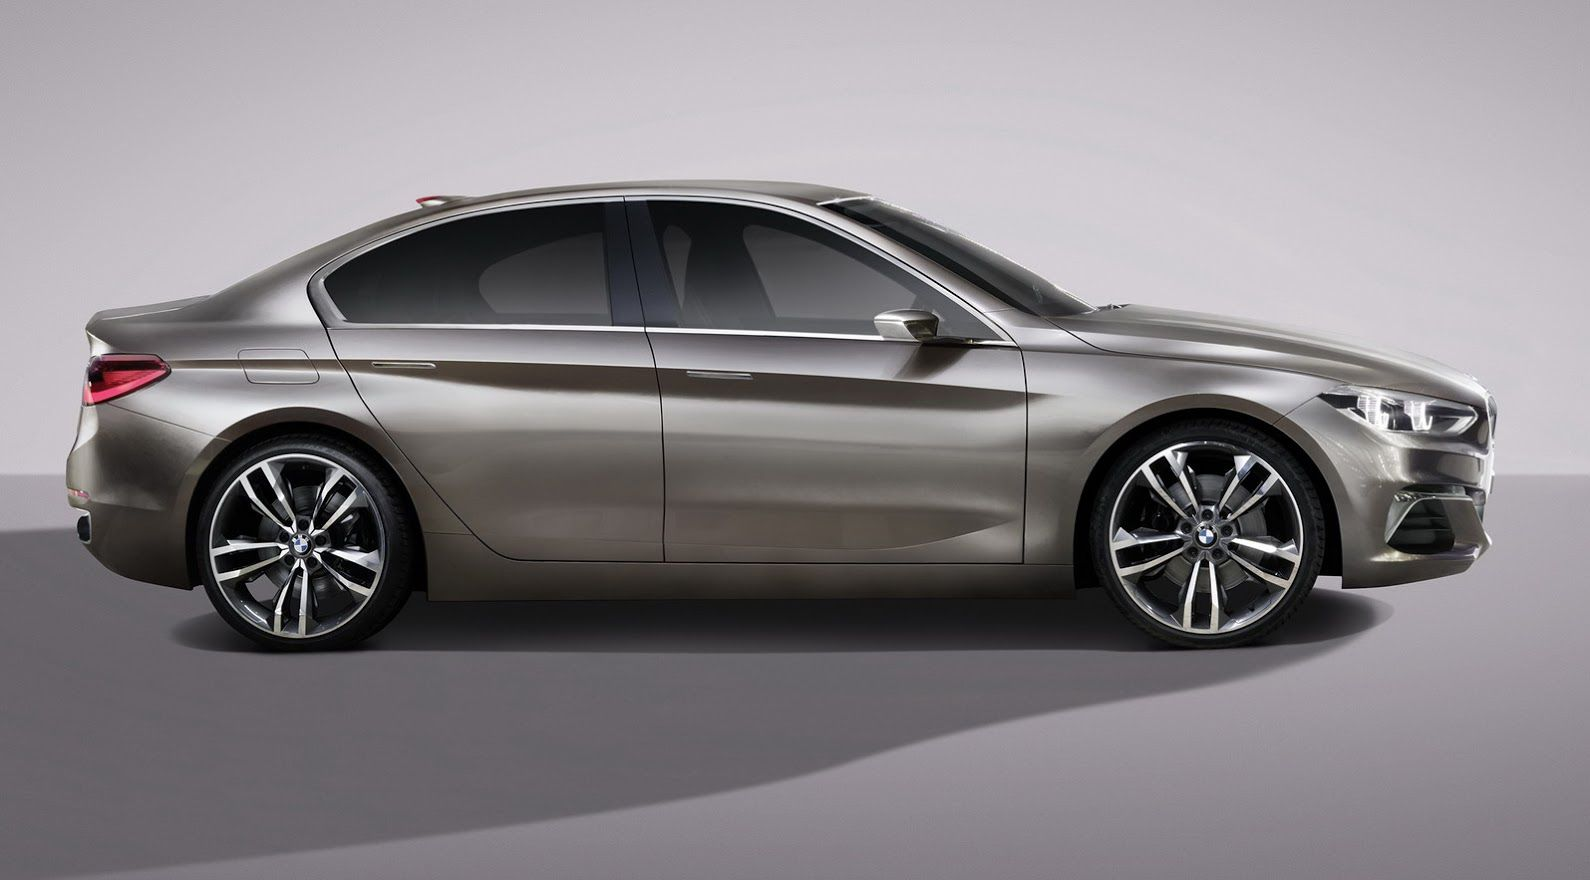 Photo Gallery For The Article Bmw 1 Series Sedan Previewed With New